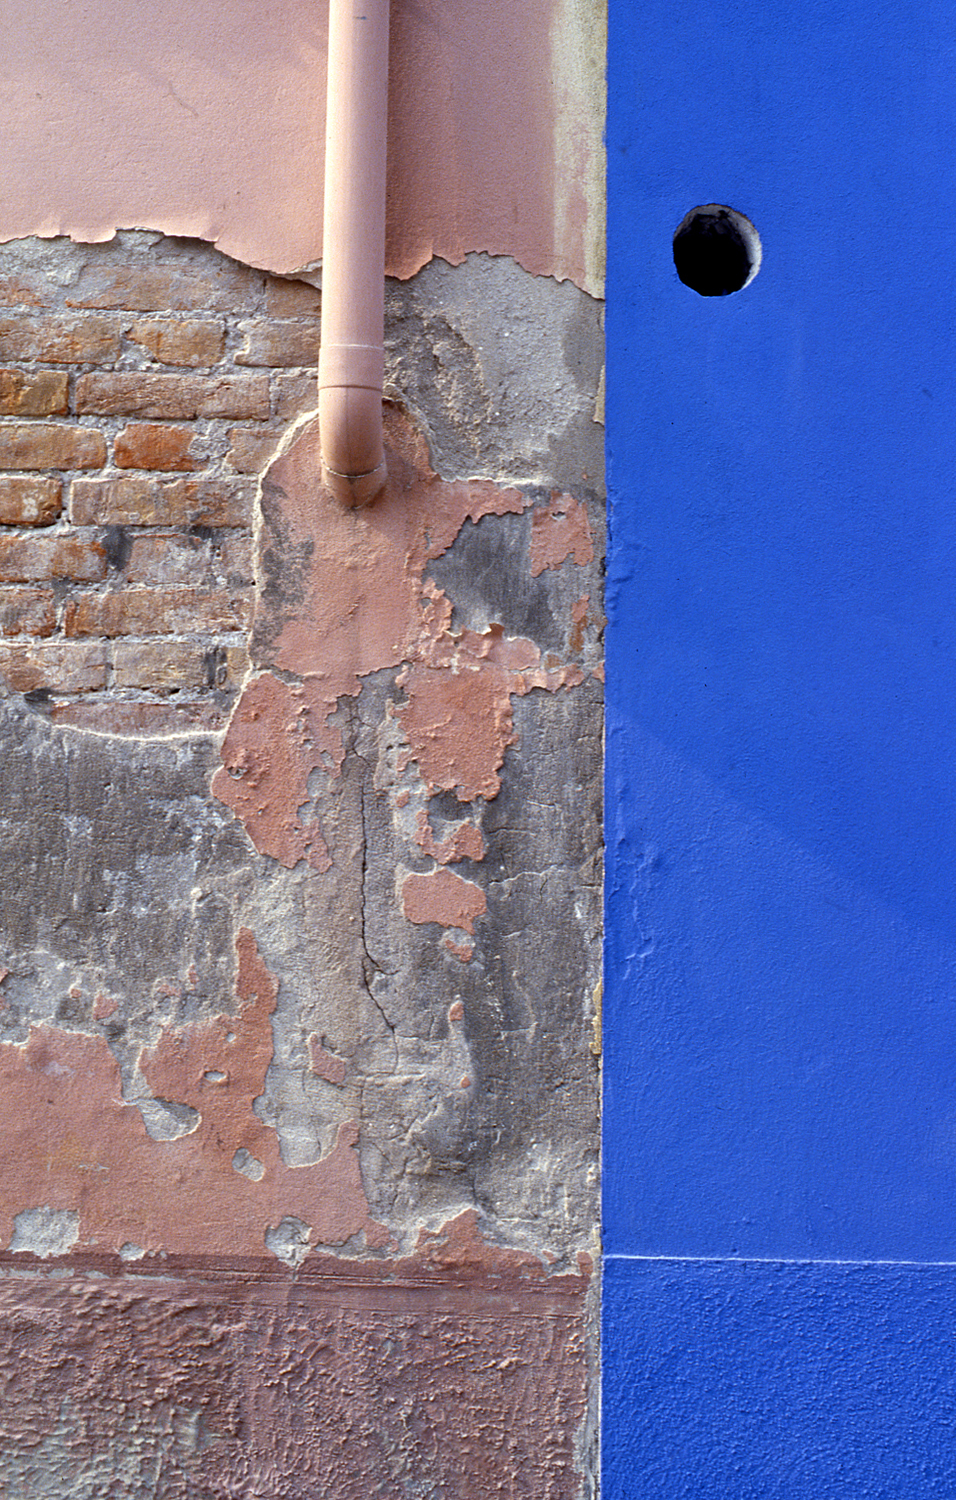 Pink and Blue Wall, Burano Italy, 1978 ,Cibachrome Print, 24 x 16cm, Edition of 10.              Exhibition:  Burano Colour Works ,Australian Centre for Photography, Sydney; Solander Gallery, Canberra; Wagga Wagga City Art Gallery,Wagga Wagga, 1979.